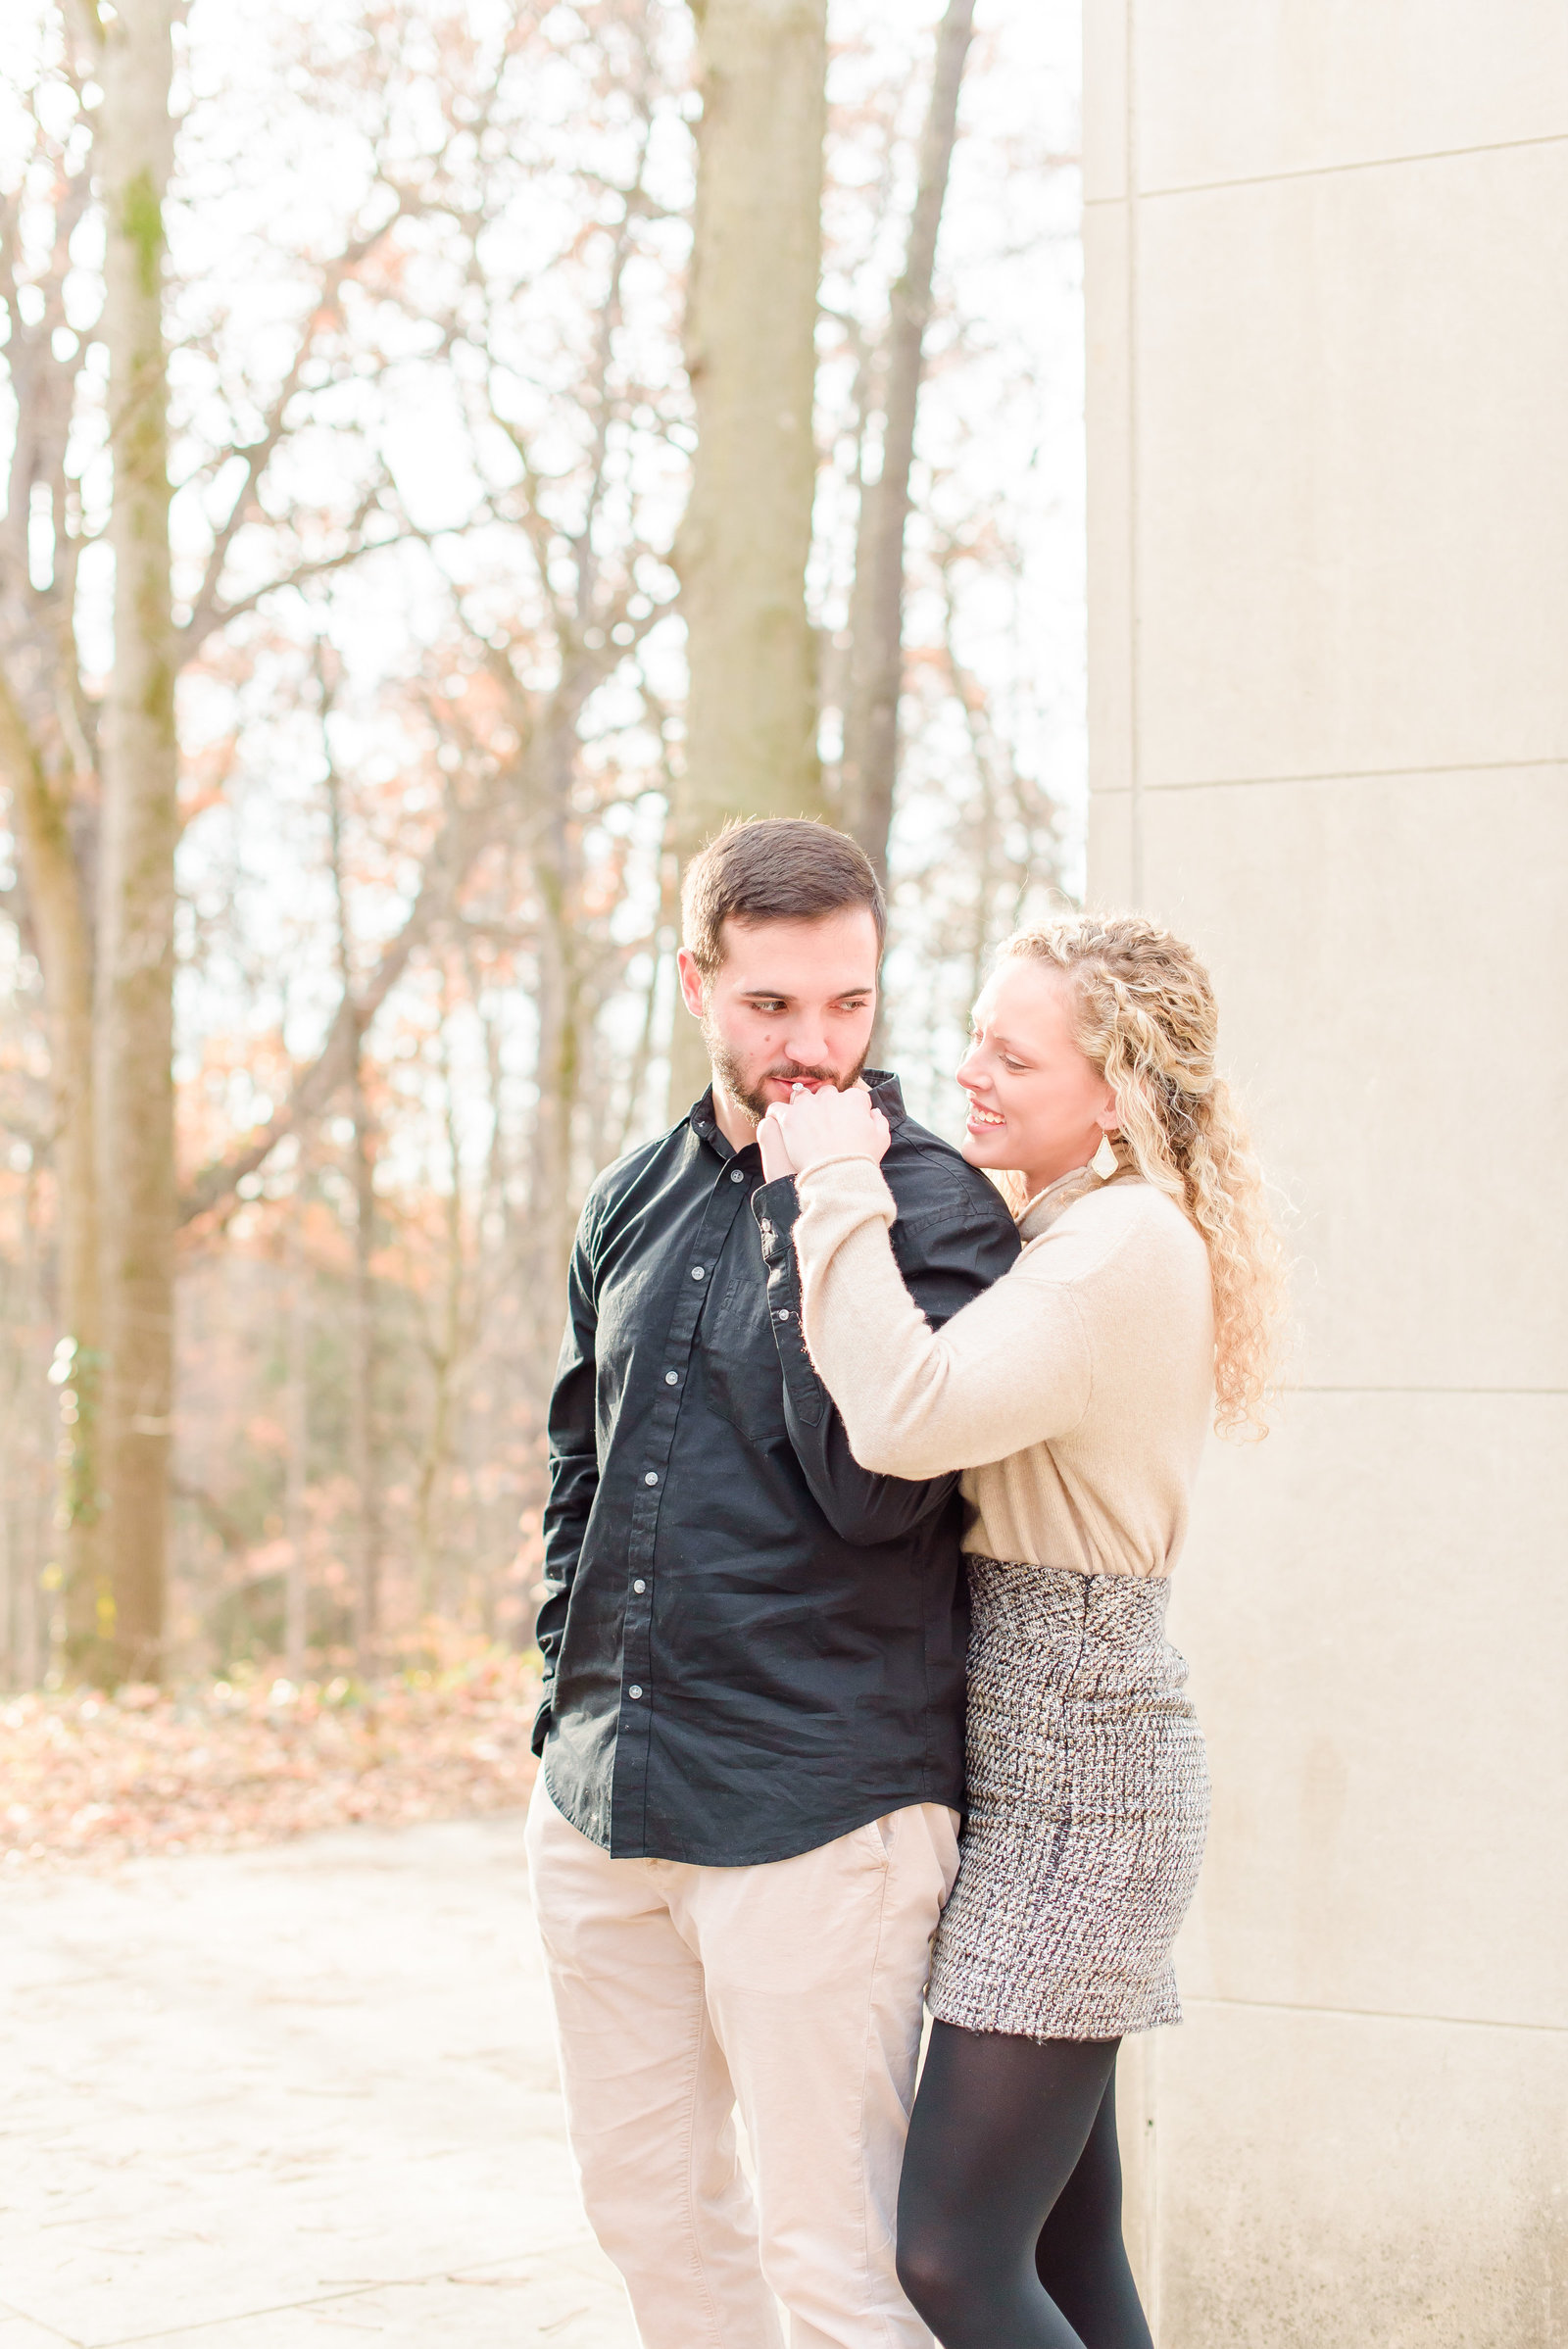 Fall Engagement Session at Holcomb Gardens